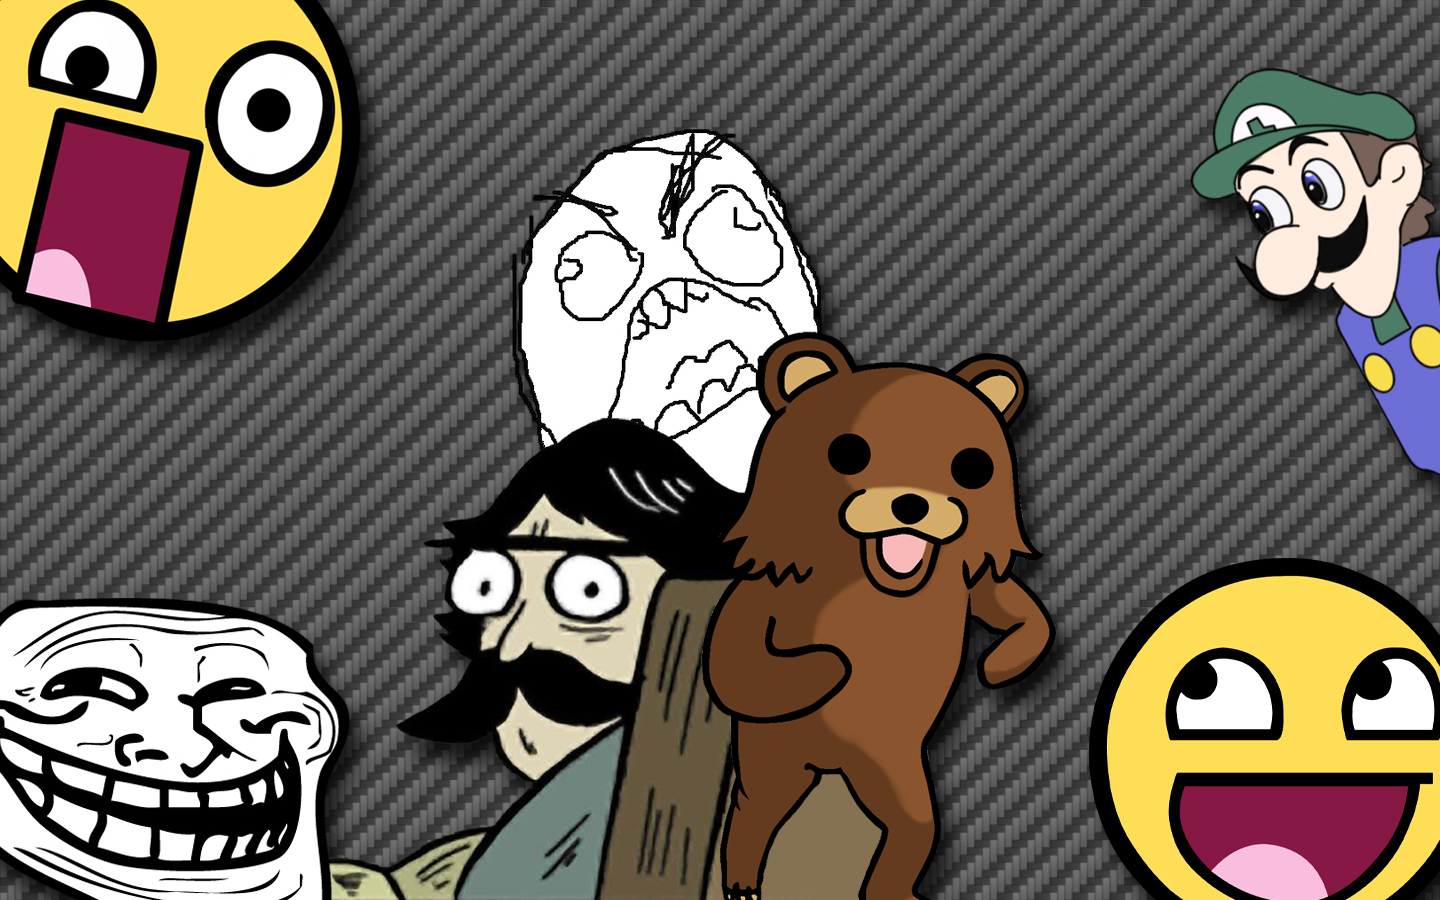 Pedobear meme trollface Awesome HD Wallpaper